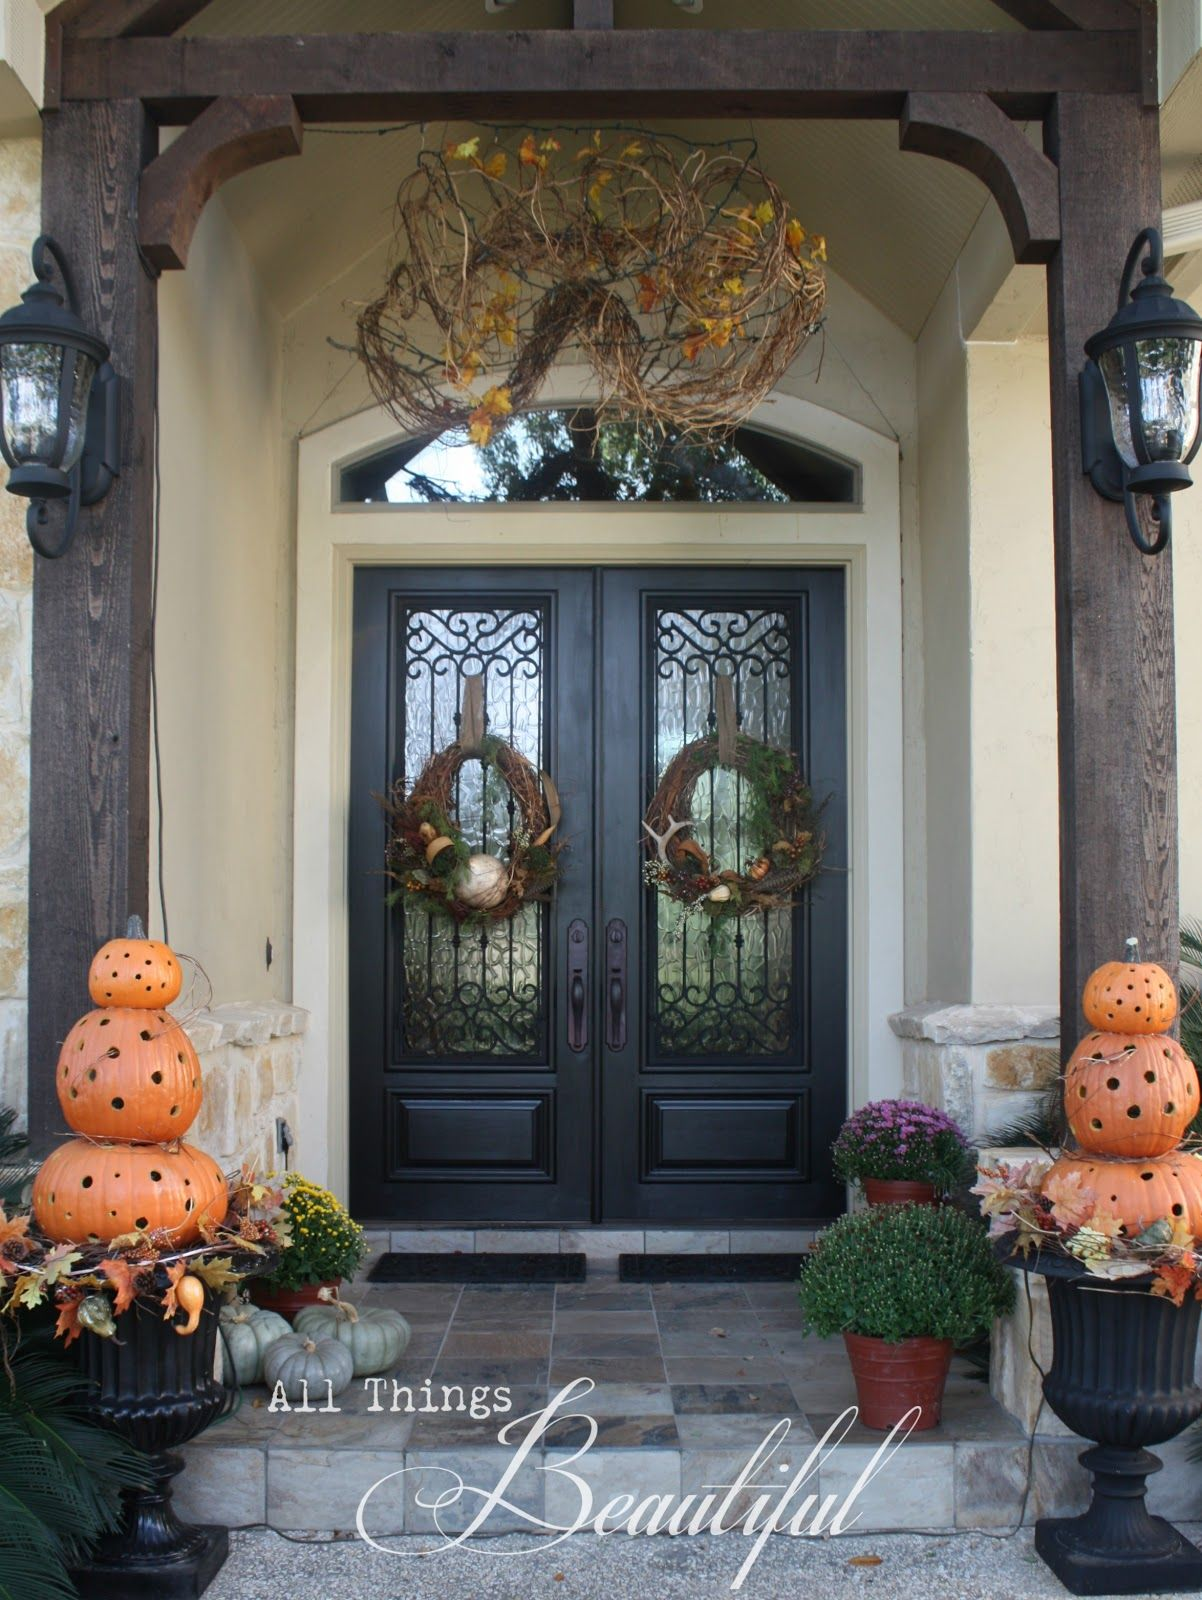 52 Beautiful Front Door Decorations And Designs Ideas: All Things Beautiful: {Fall Wreath} Porch Decor